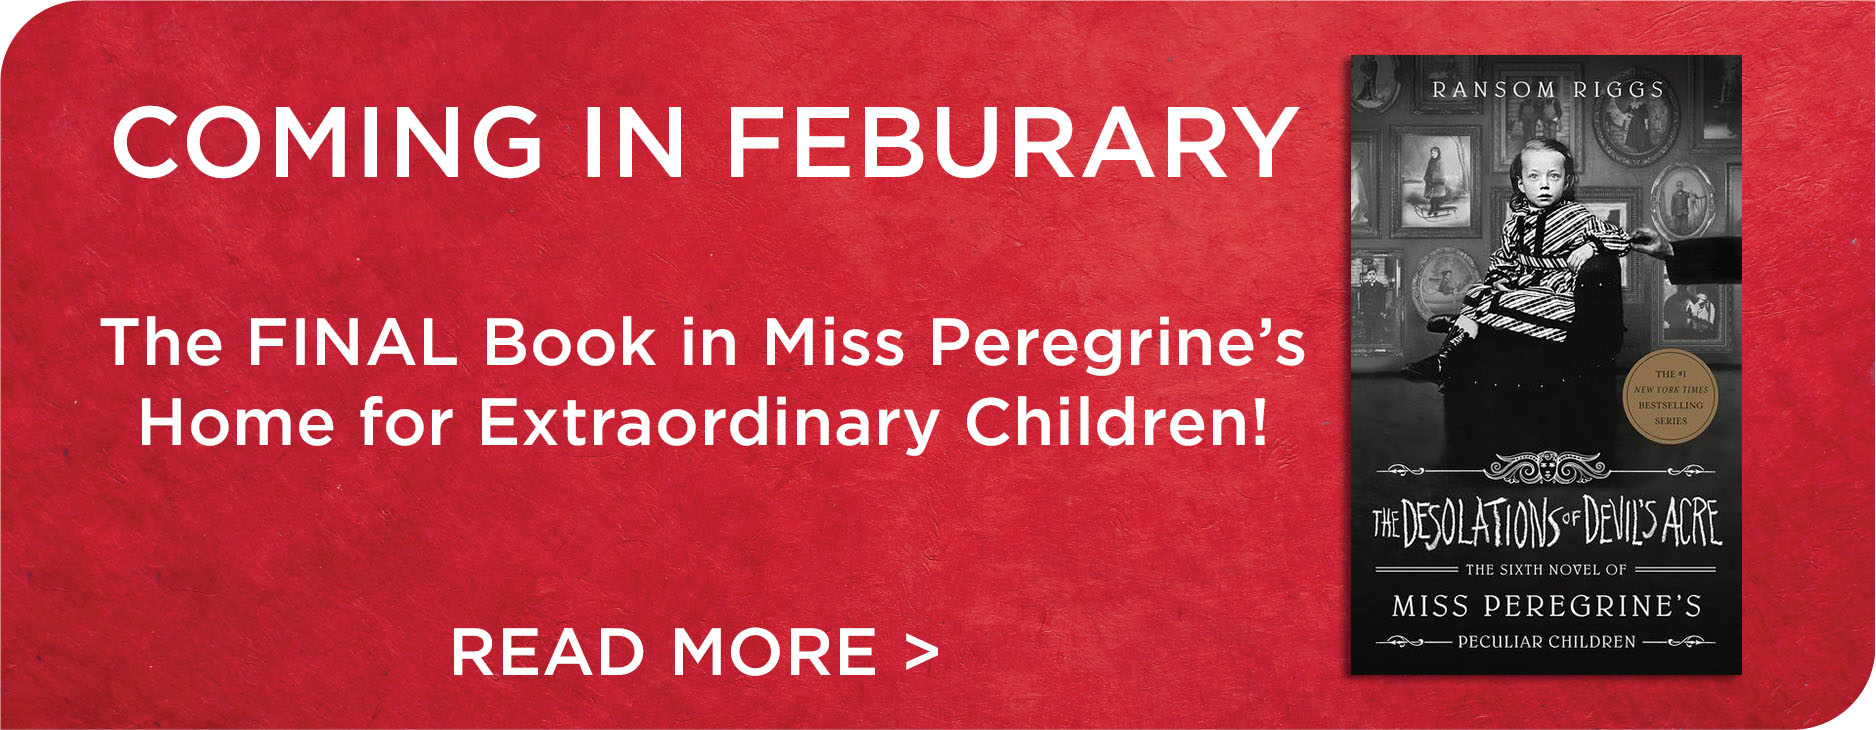 FInal Book the Miss Peregrine's Home for Extraordinary Children Just Announced!